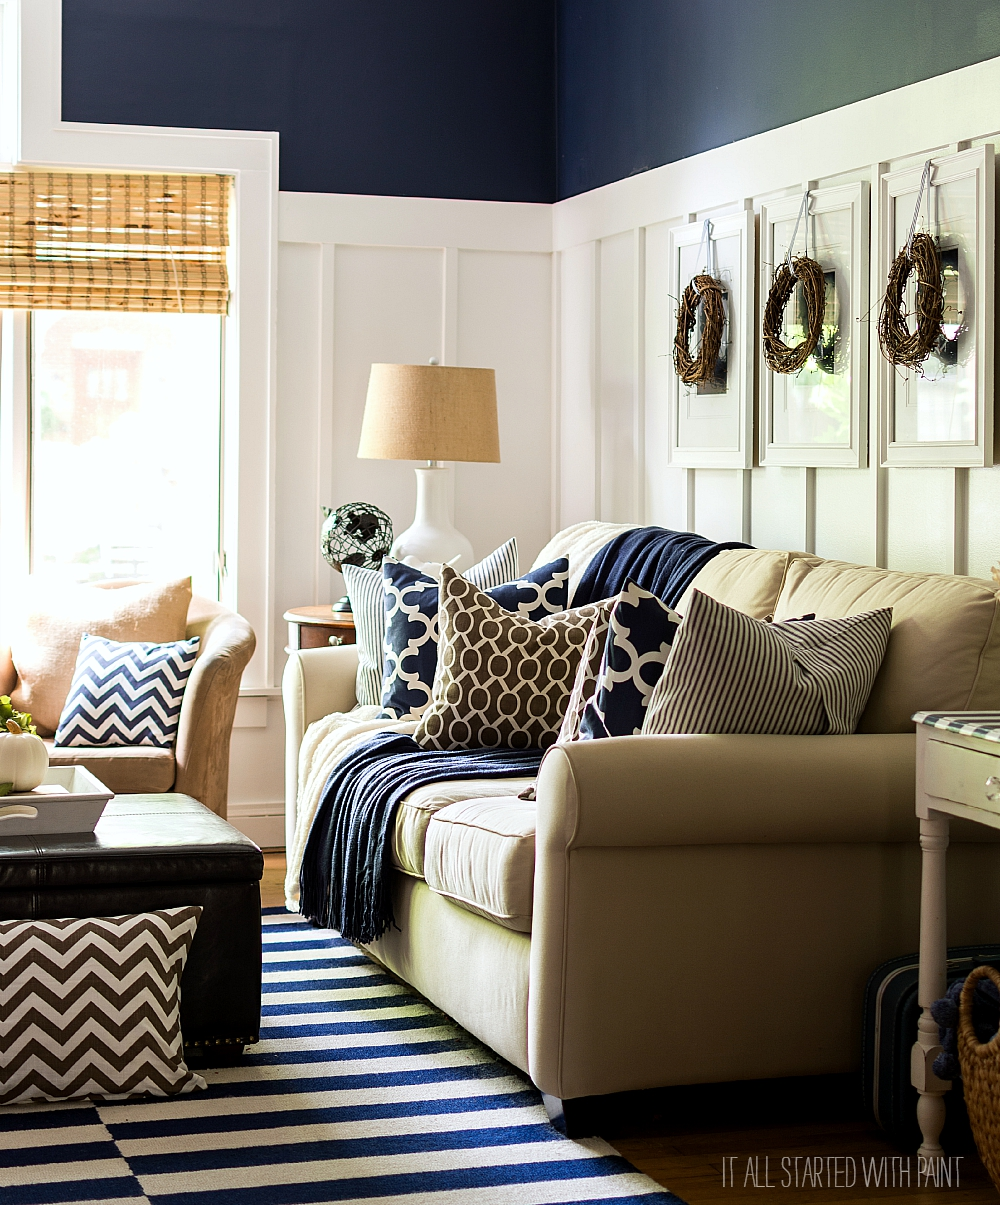 Living Room Fall Living Room Decorating Ideas fall decor in navy and blue decorating ideas using brown neutrals board batten living room decorated for